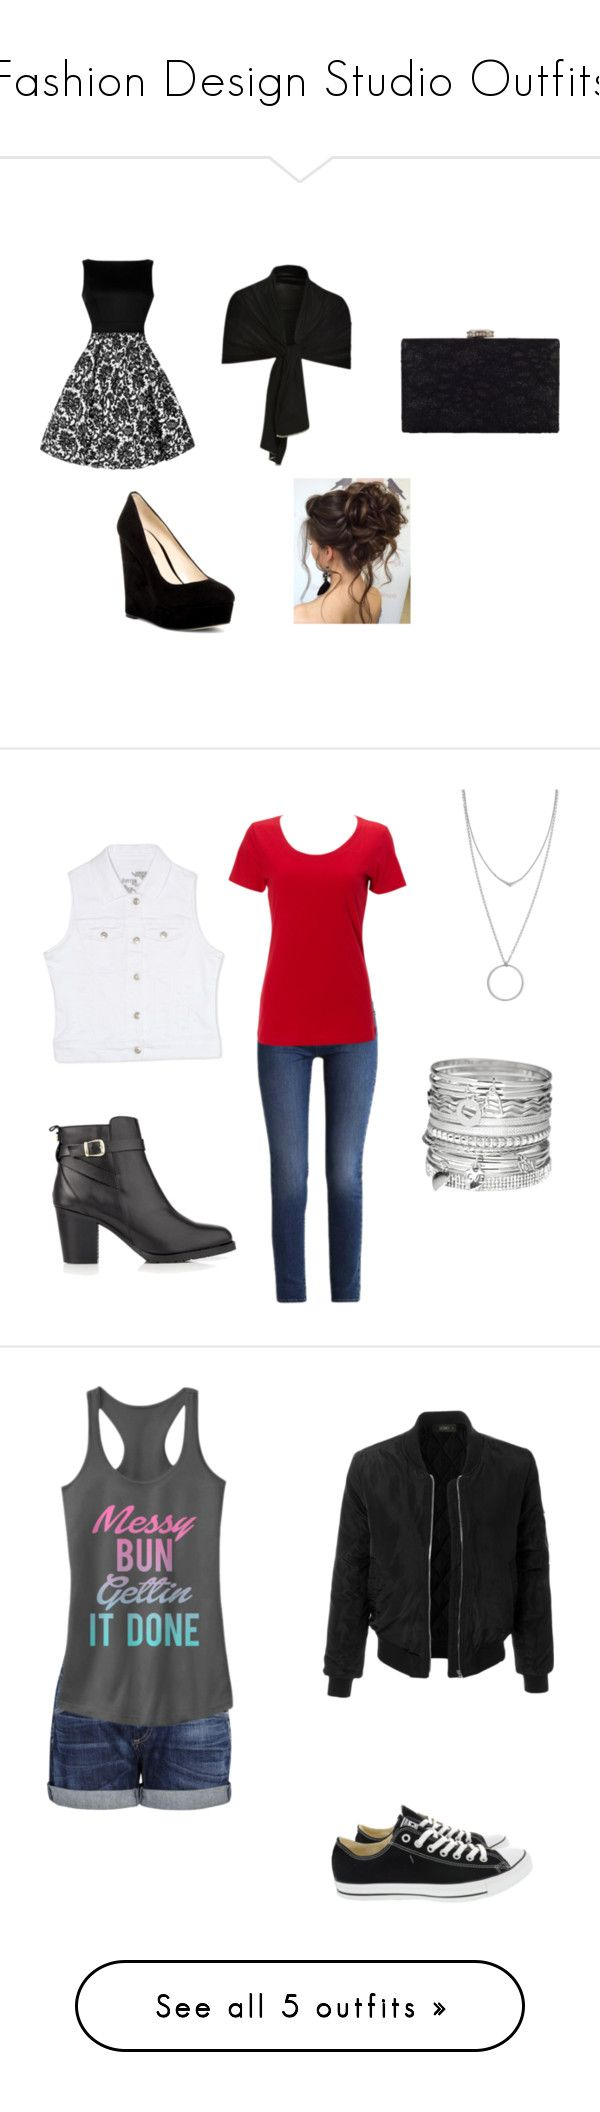 """""""Fashion Design Studio Outfits"""" by nicbeat13 ❤ liked on Polyvore featuring Nine West, Rhona Sutton, Chesca, Calvin Klein, Simplex Apparel, Rhythm in Blues, Kurt Geiger, Avenue, Botkier and Citizens of Humanity"""